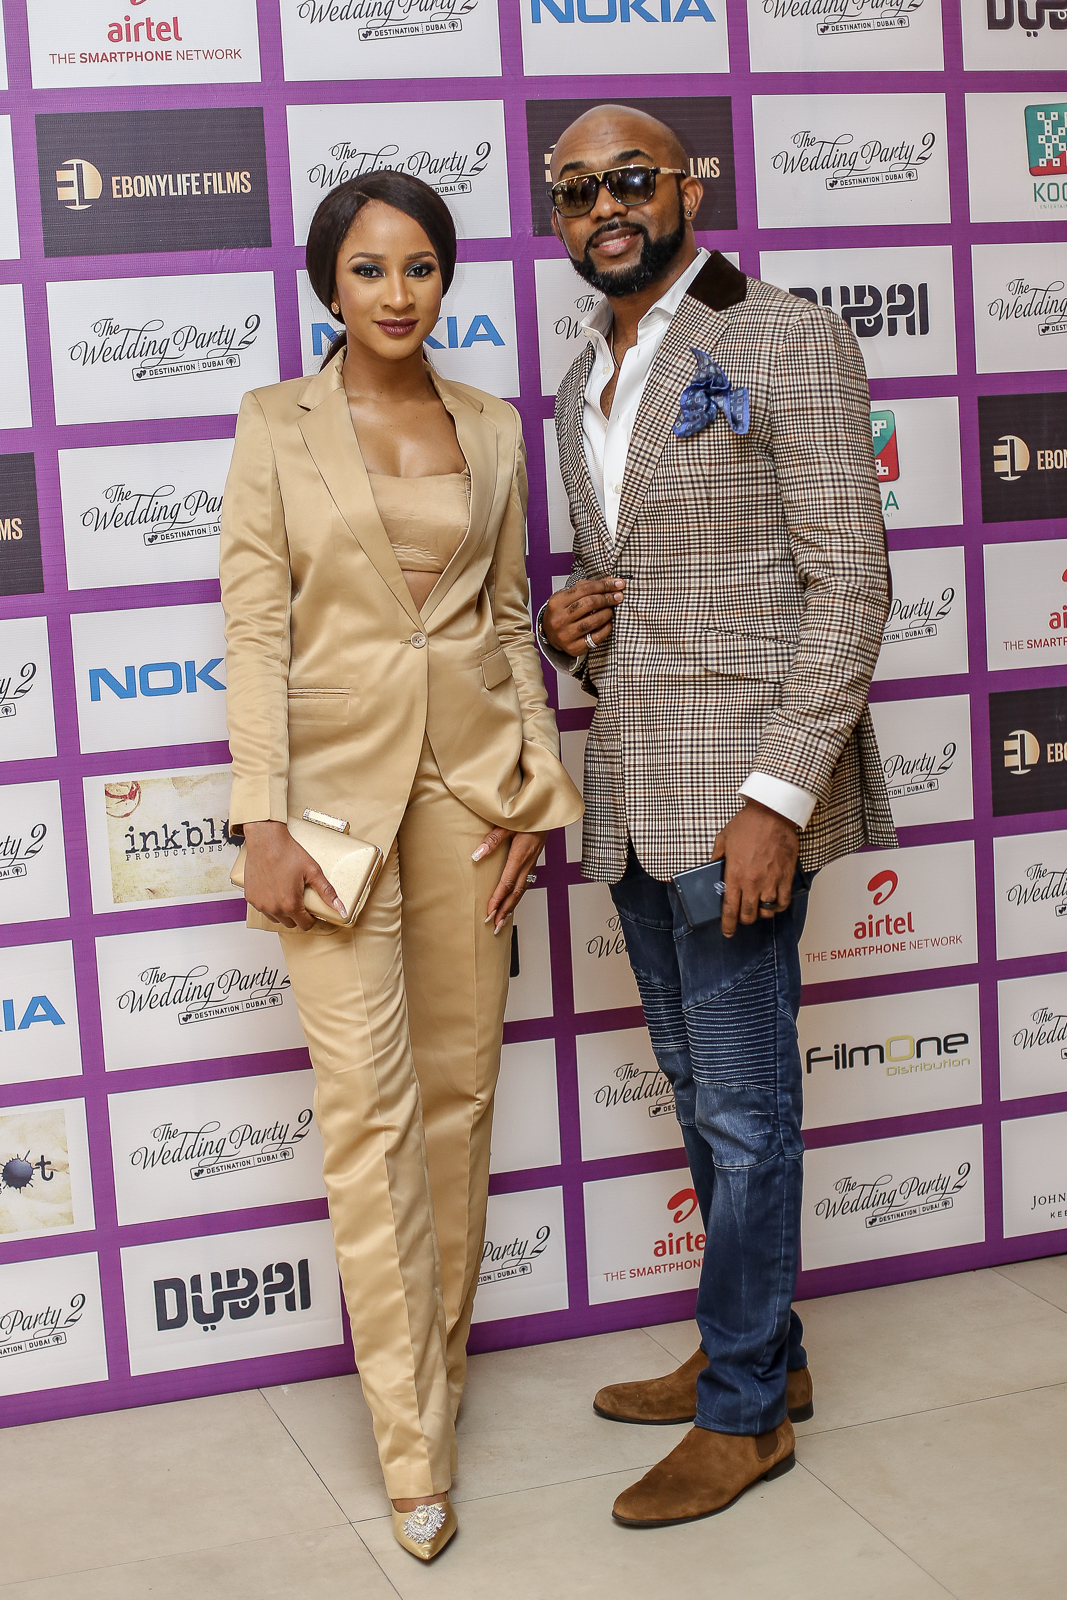 Photos: Mo Abudu, Banky W, Adesua, Eyinna, Ikechukwu, Frank Donga, AY, Ireti Doyle, EmmaOhMyGod attend the exclusive partner screening of